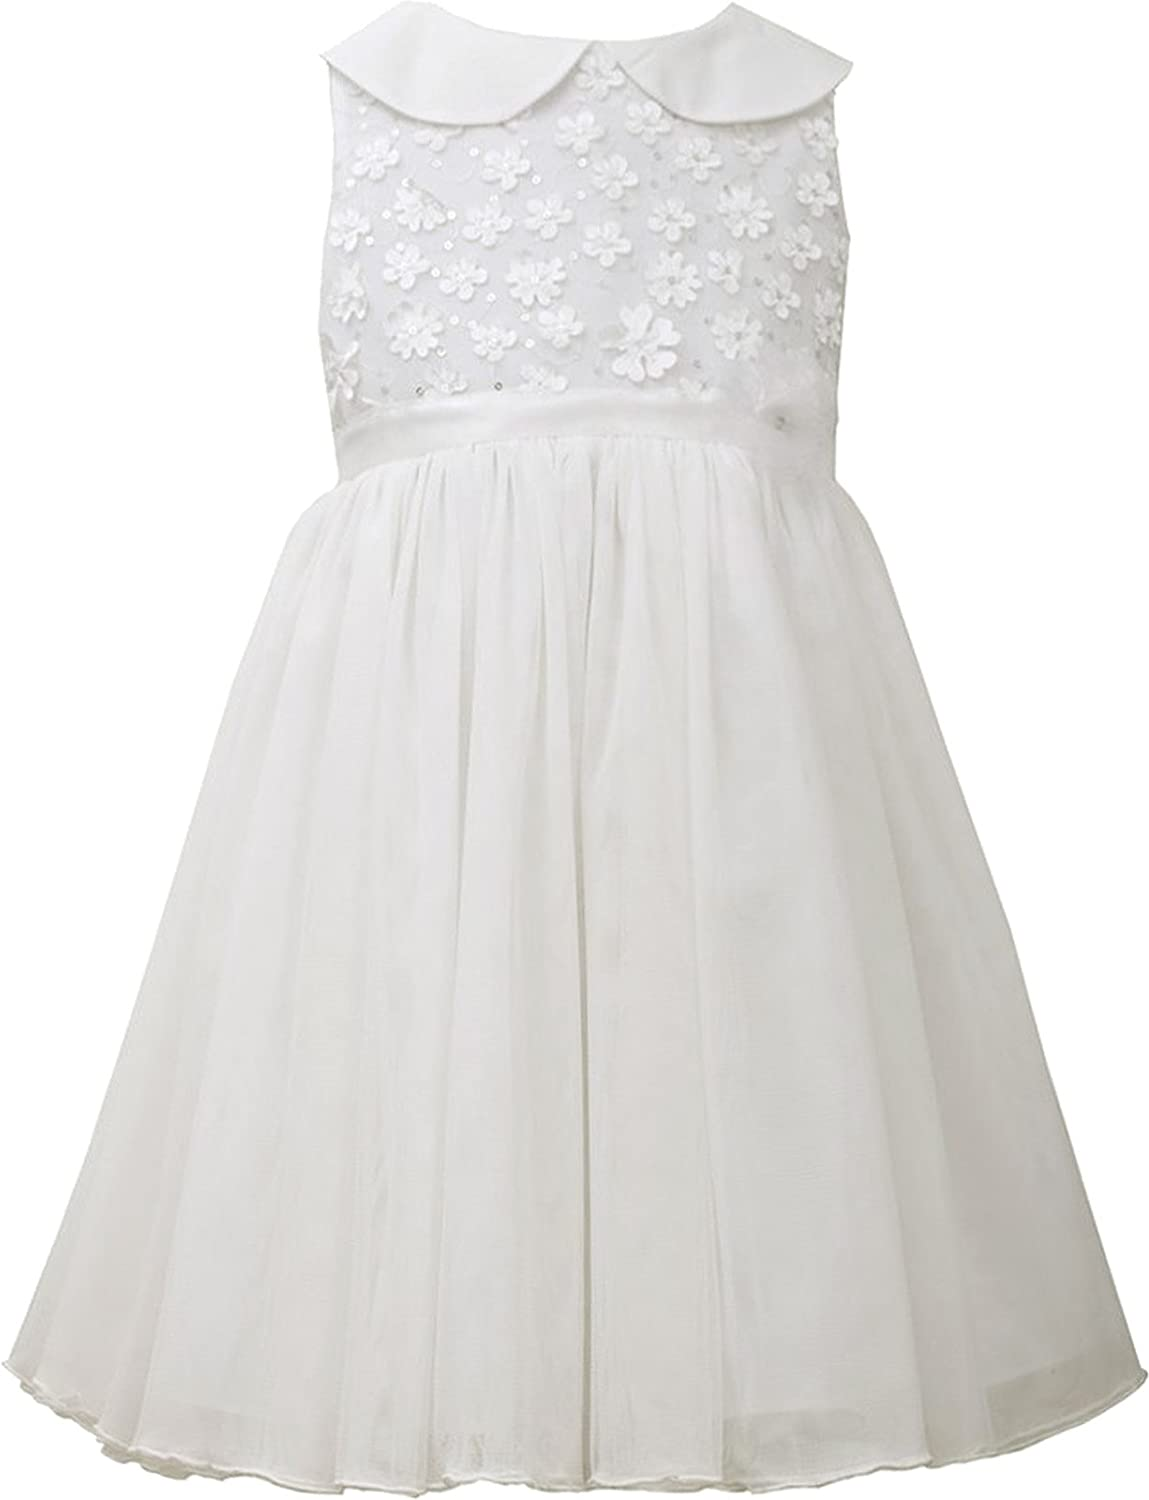 Little Girls 2T-4T Ivory Peter Pan Collar Fit and Flare Dress